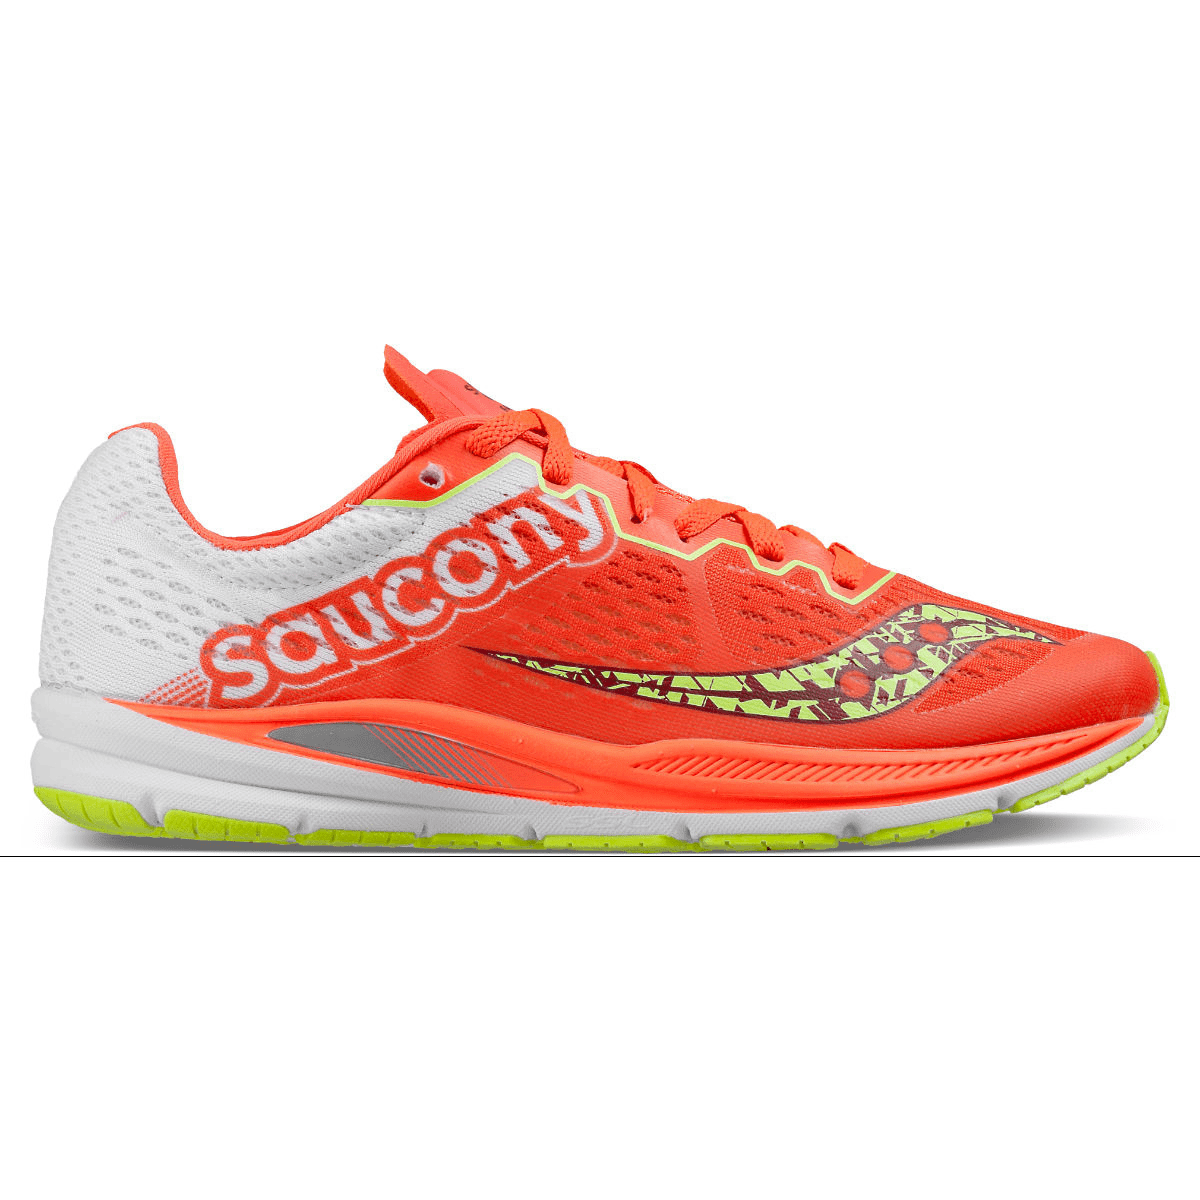 NIB WOMENS SAUCONY FASTSWITCH 8 CORAL CITRON S19032-1 RUNNING SHOES SZ 8M J819